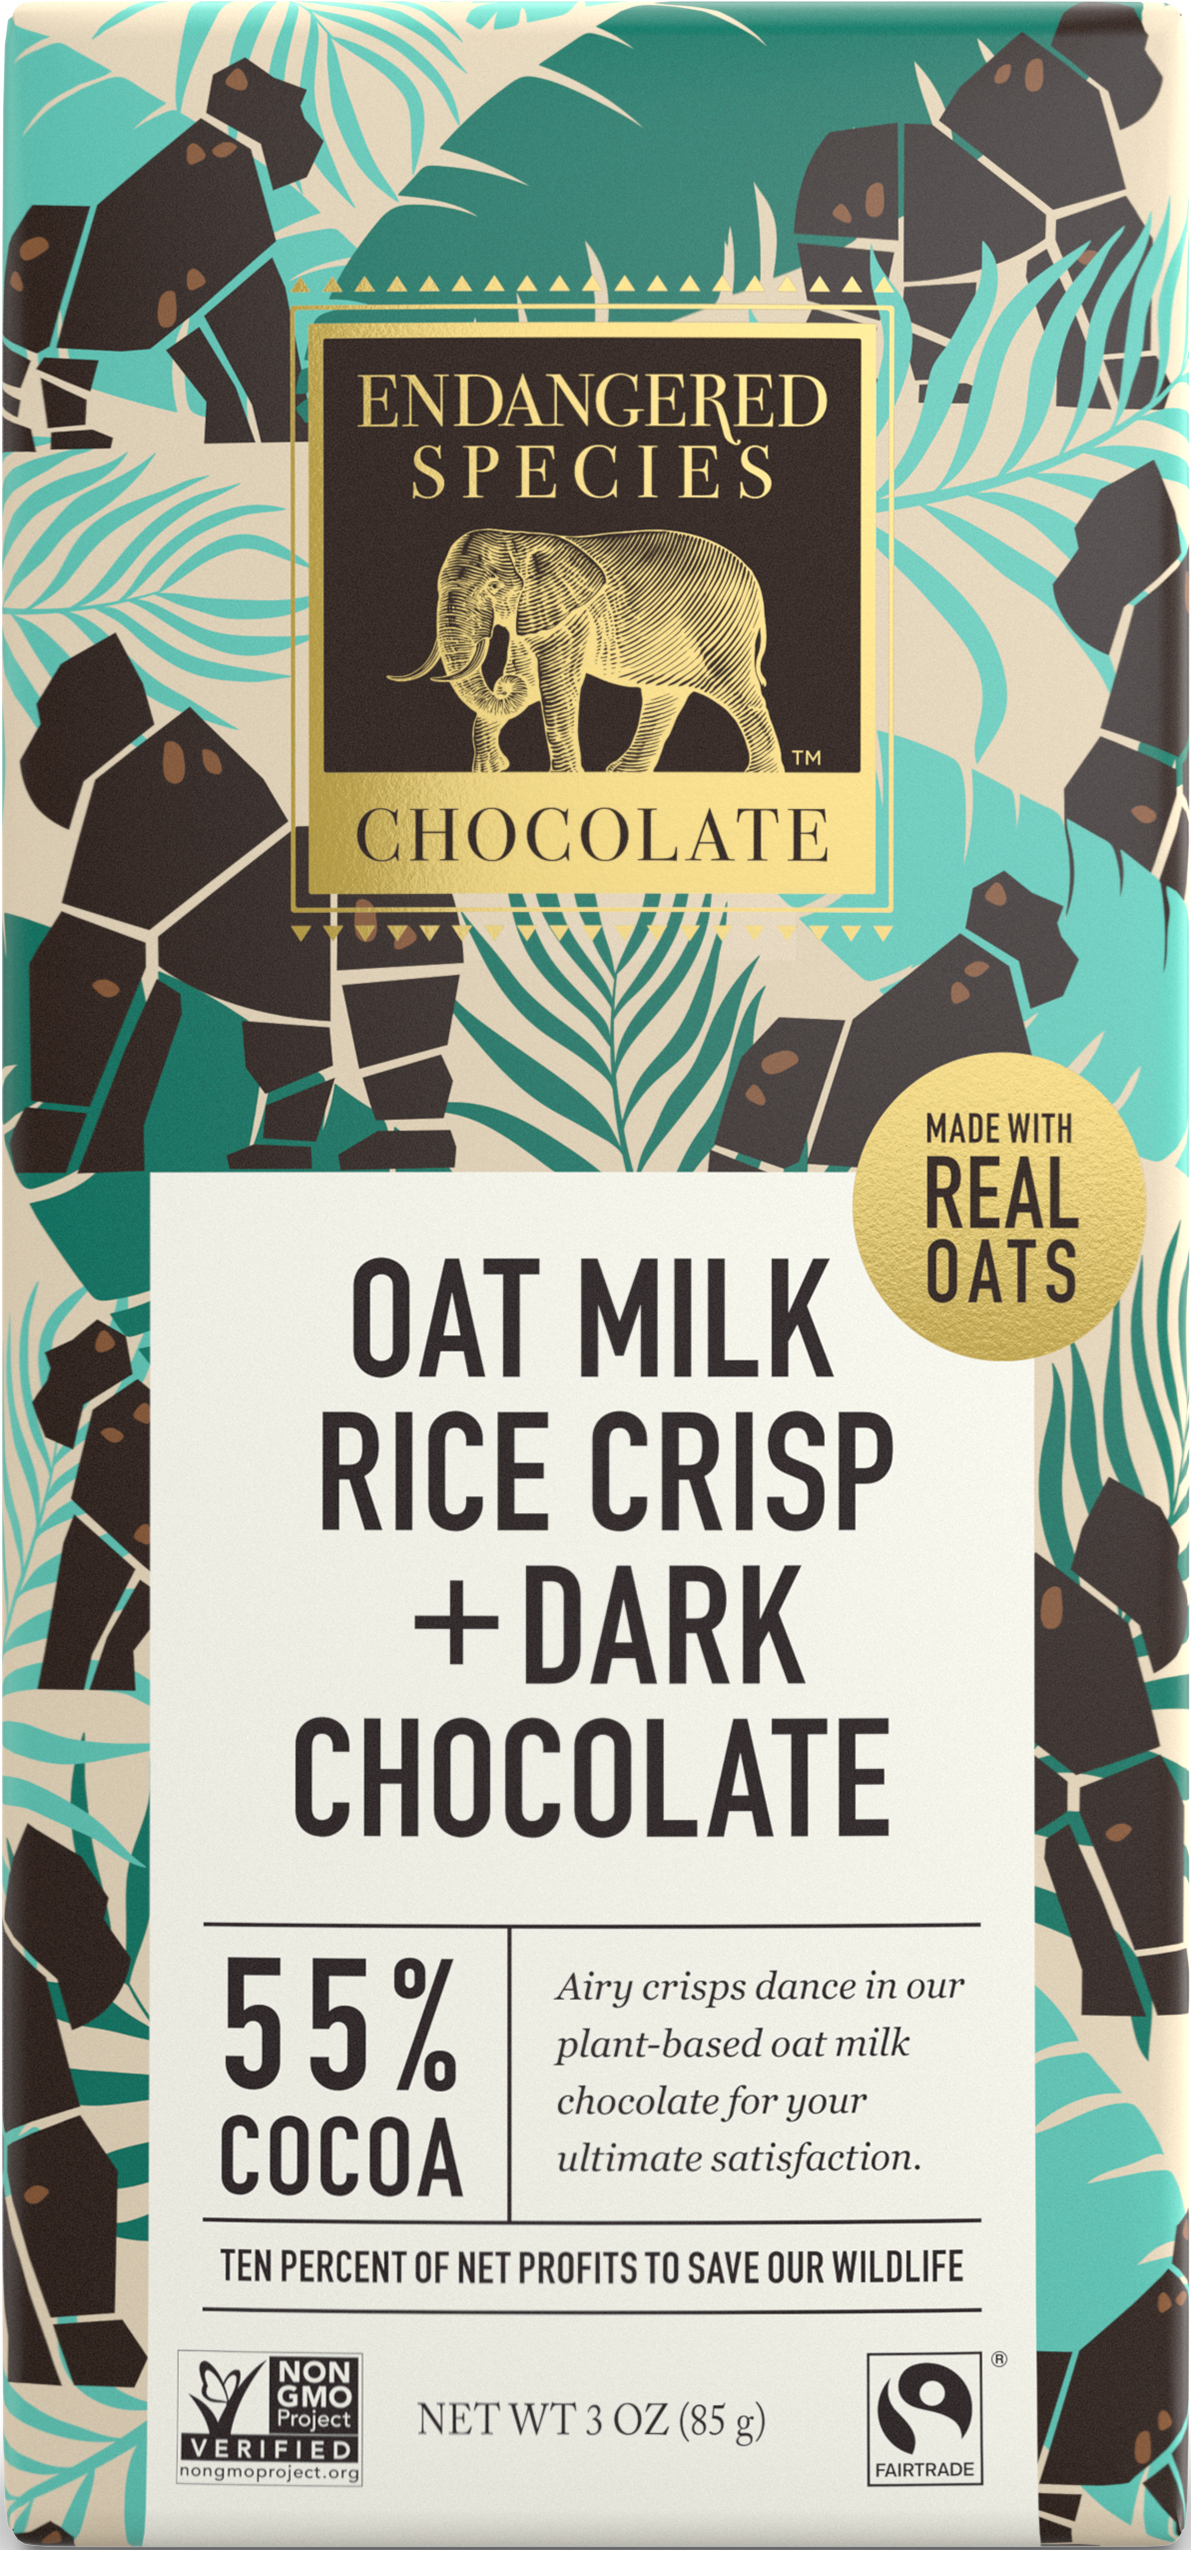 oat milk, rice crisp, and dark chocolate bar